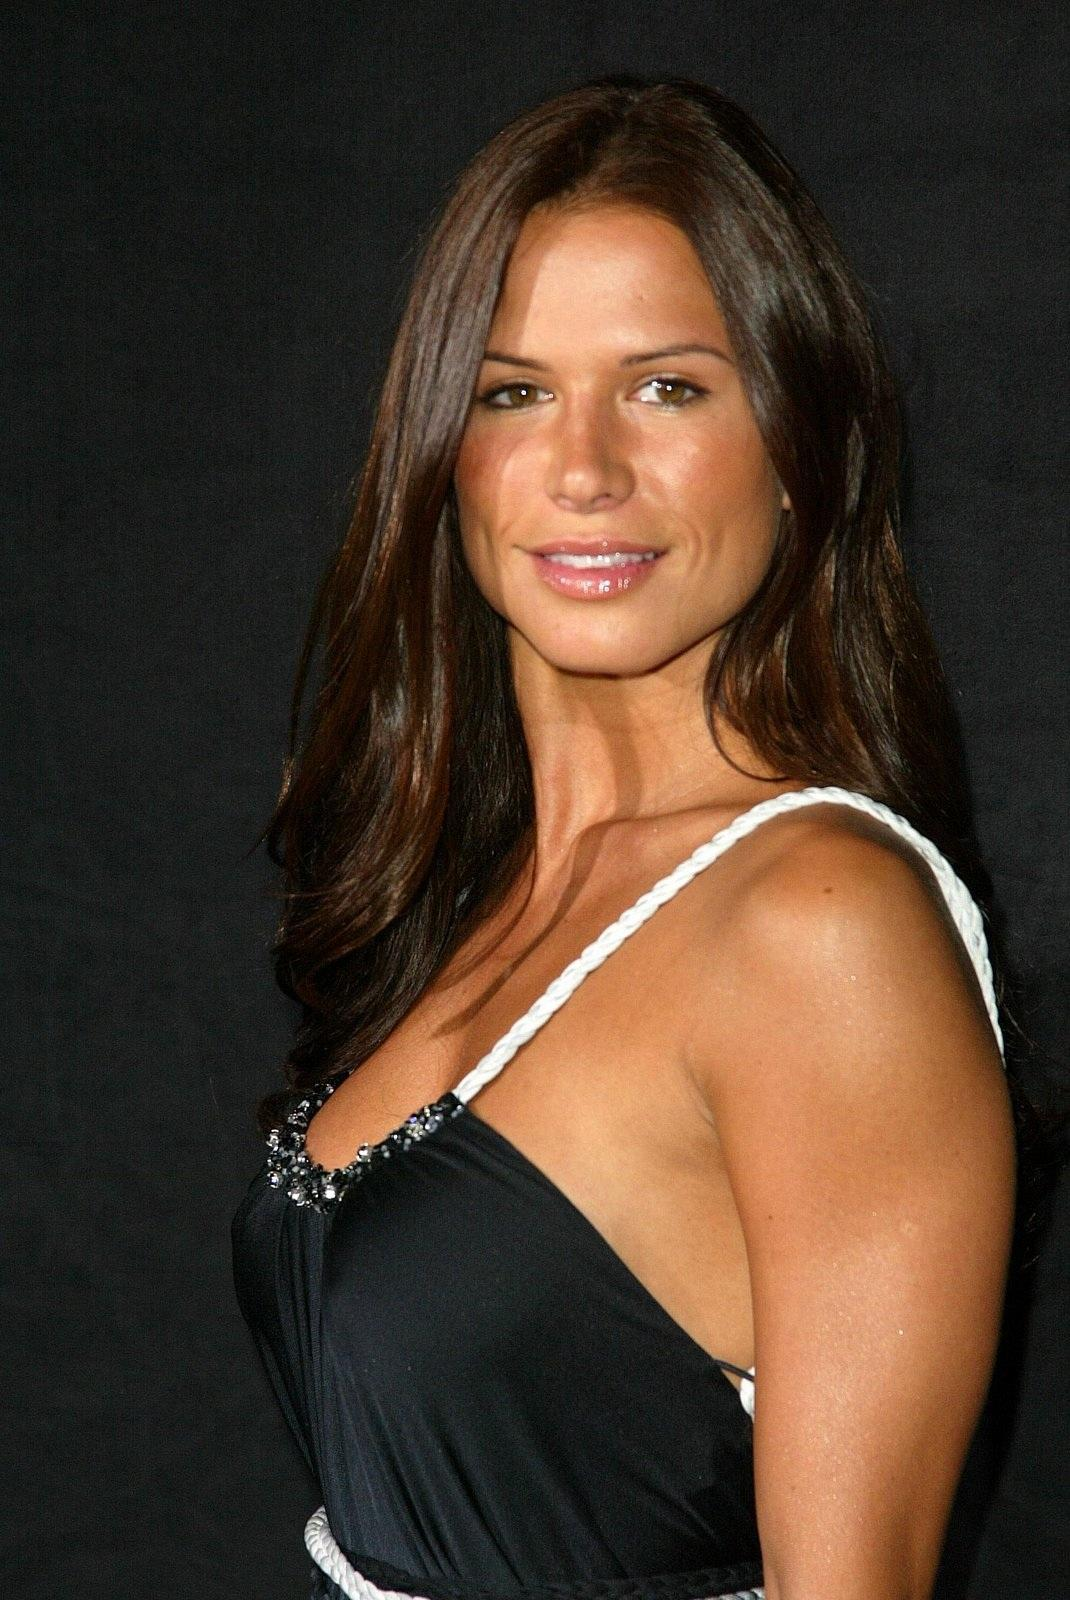 Bikini Rhona Mitra nude (17 photo), Sexy, Hot, Boobs, in bikini 2020